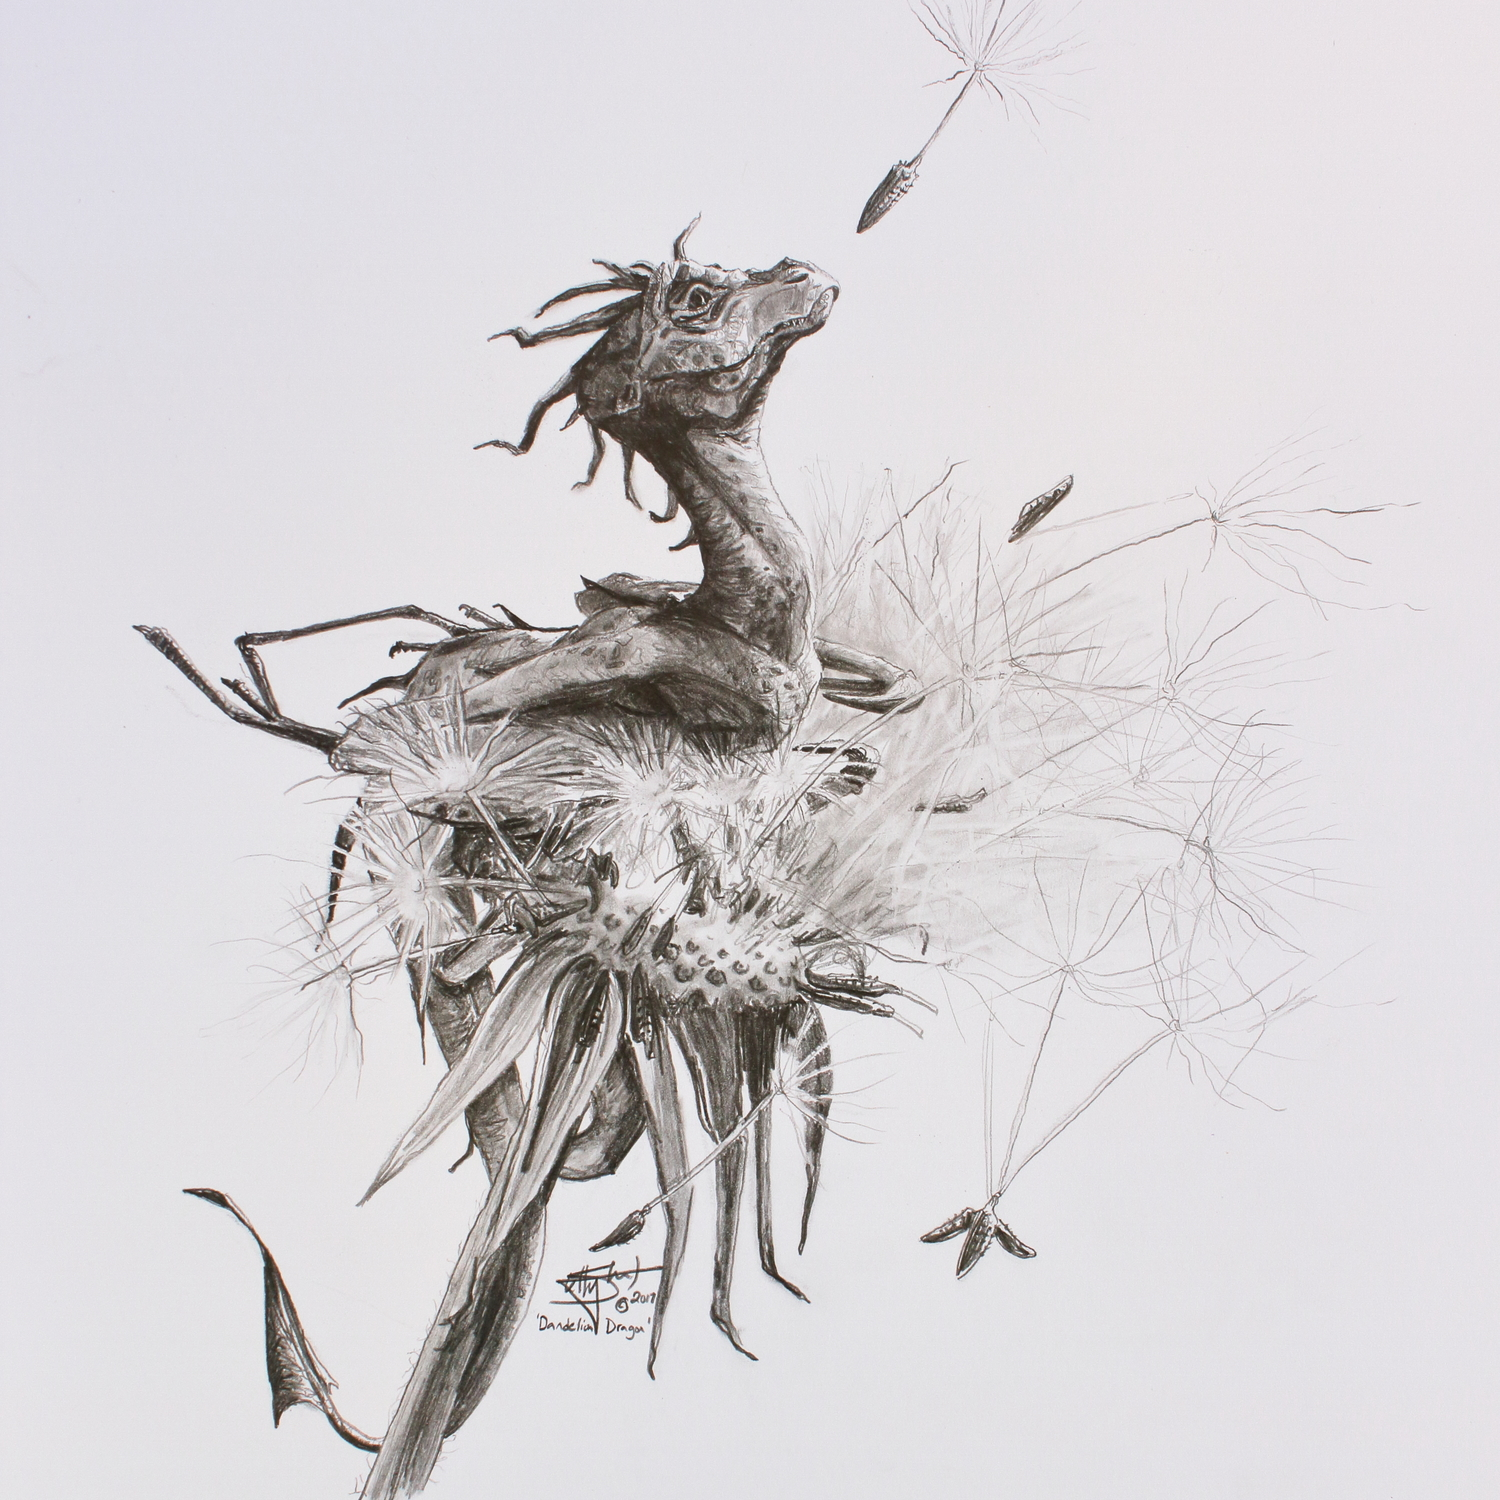 Dragon Dandelion Artwork by Shelly Campbell